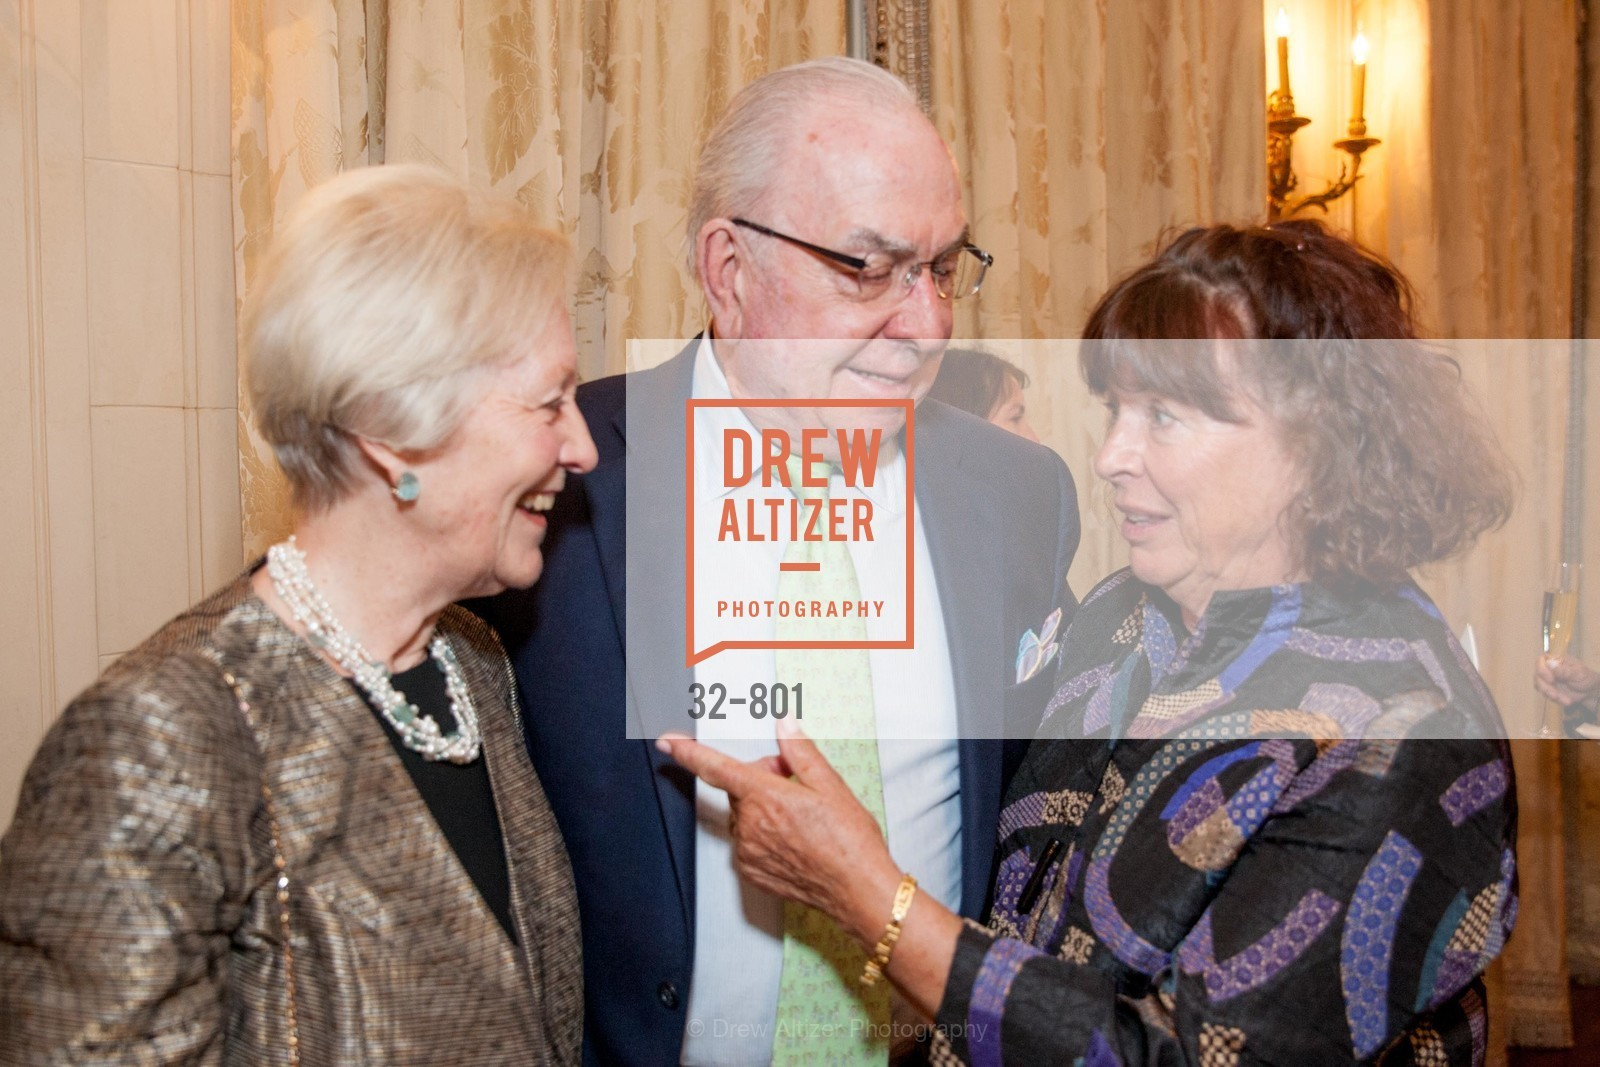 Sally Gallagher, Mike Gallagher, Paddy Moore, GETTY Hosts Leakey Foundation Dinner, US, April 24th, 2015,Drew Altizer, Drew Altizer Photography, full-service agency, private events, San Francisco photographer, photographer california